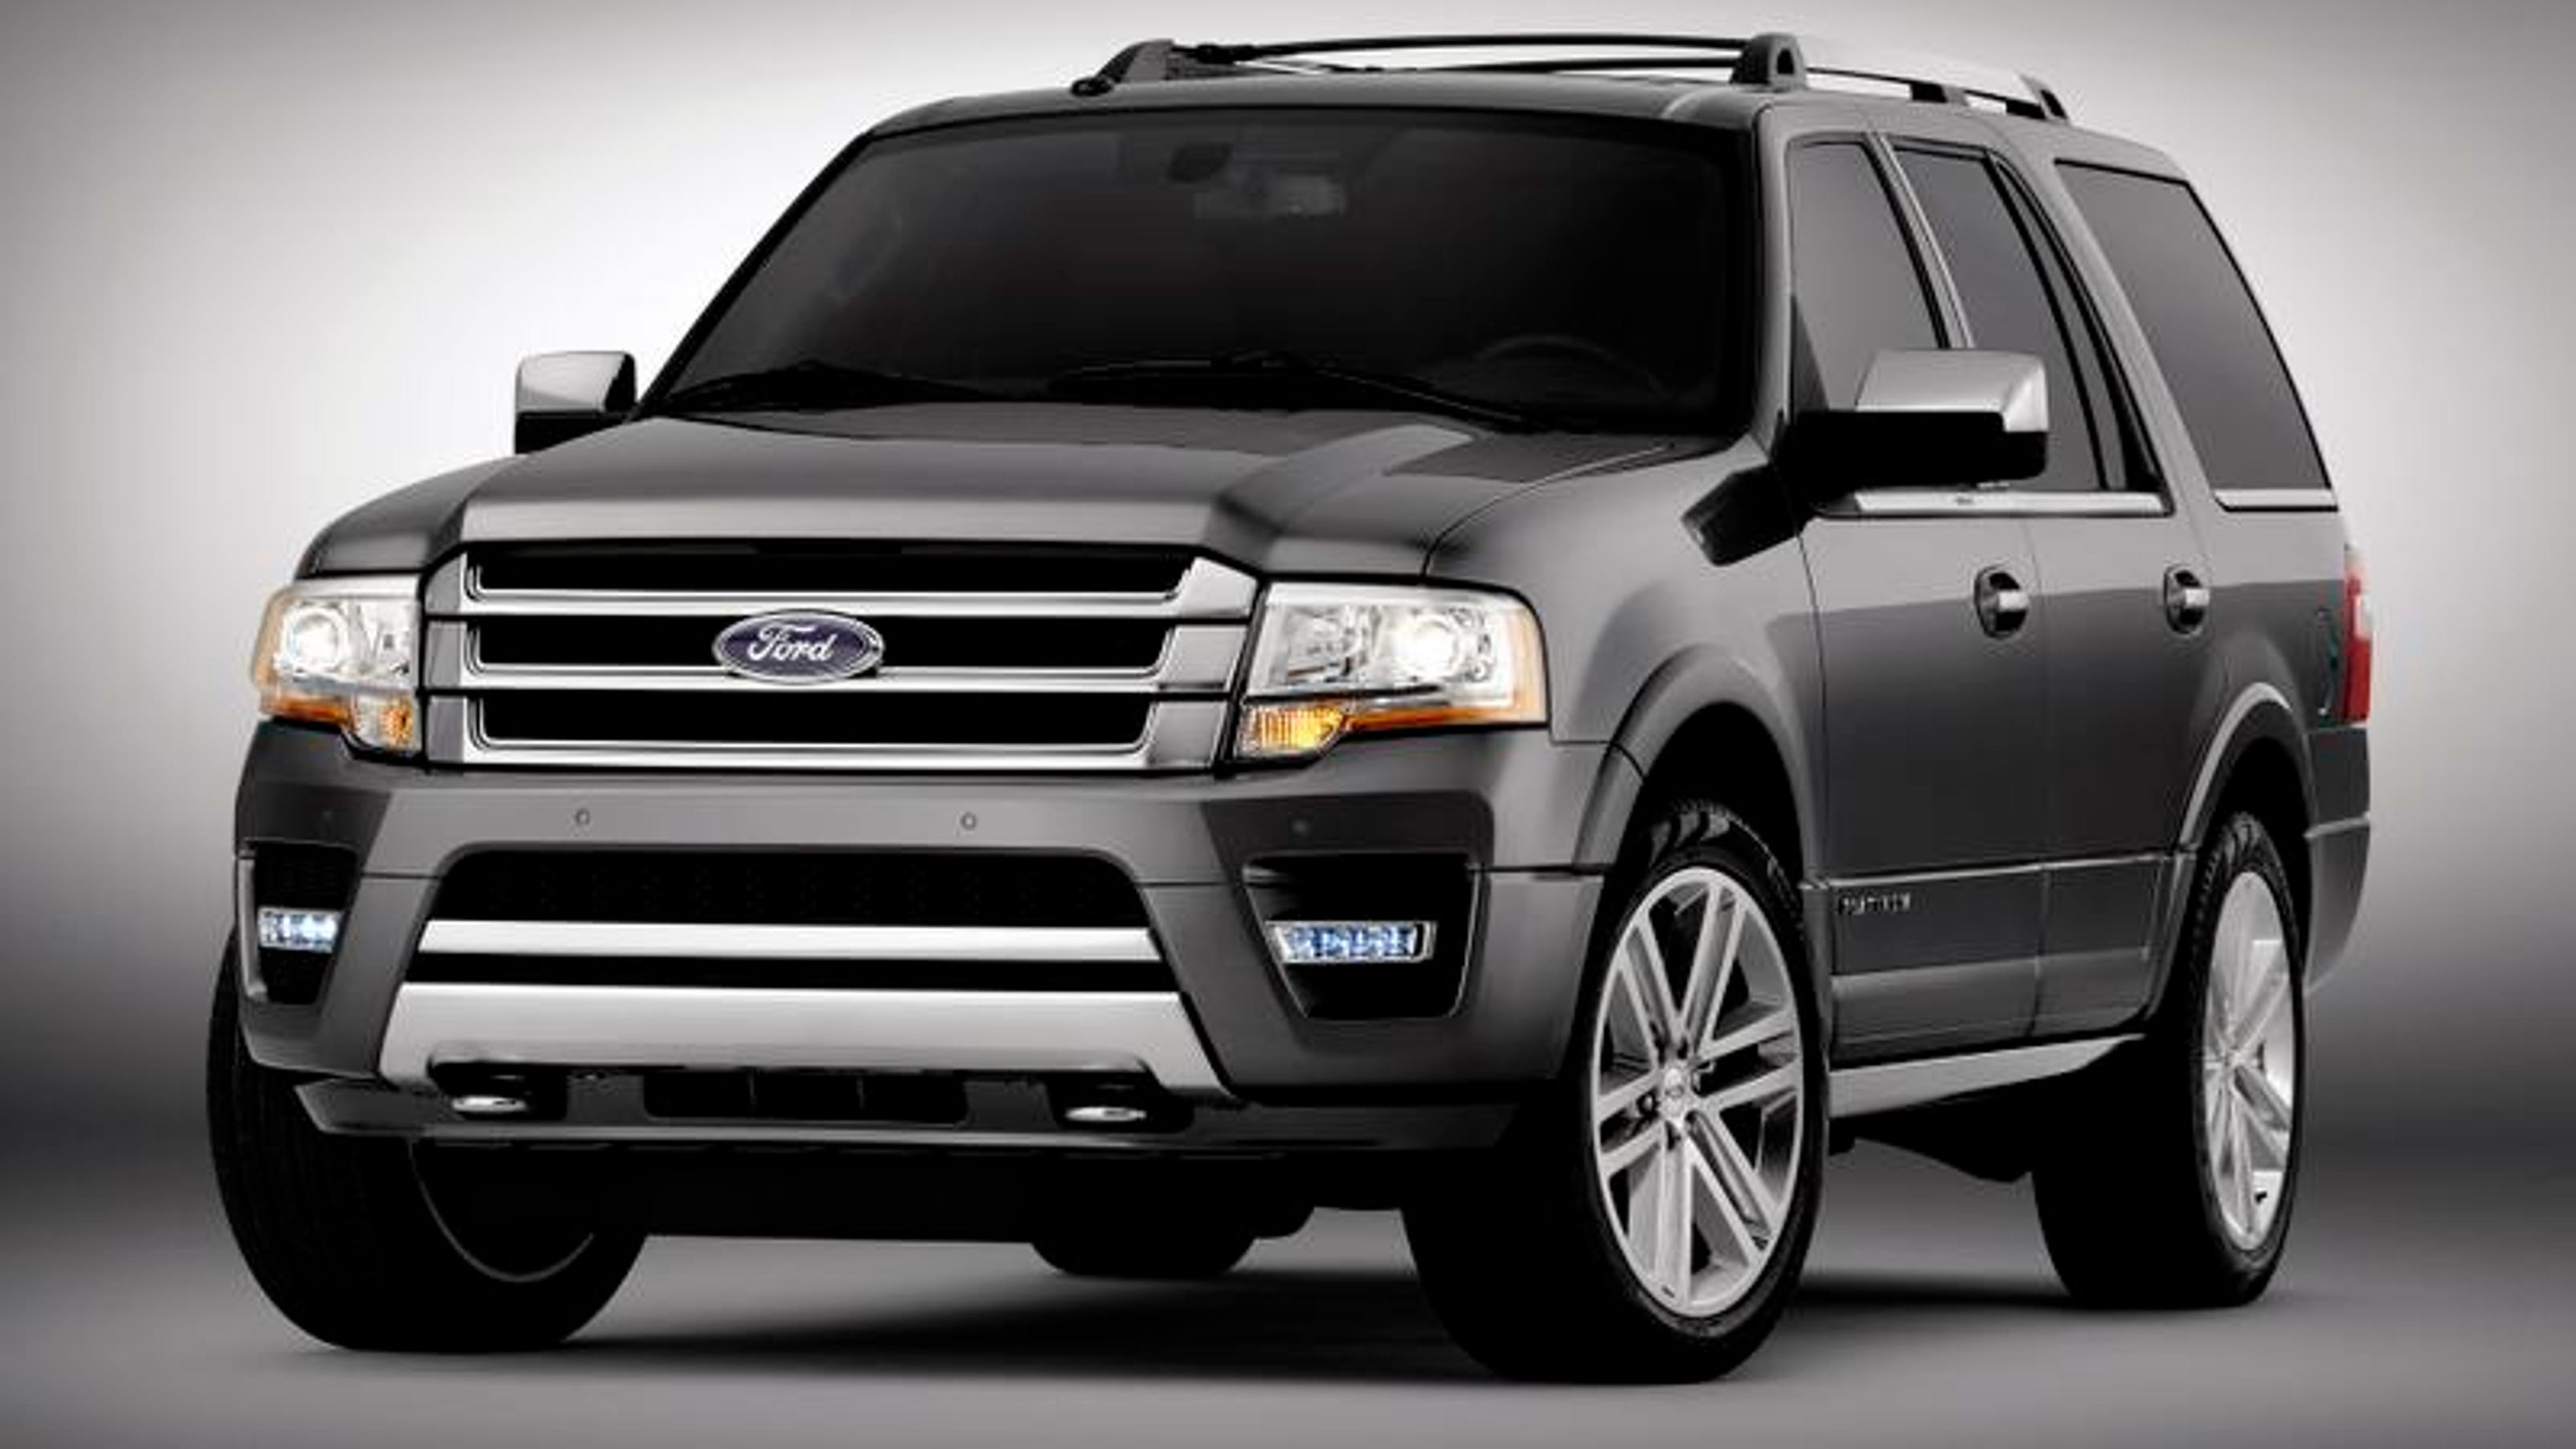 2015 ford expedition suv spacious full size luxury. Black Bedroom Furniture Sets. Home Design Ideas